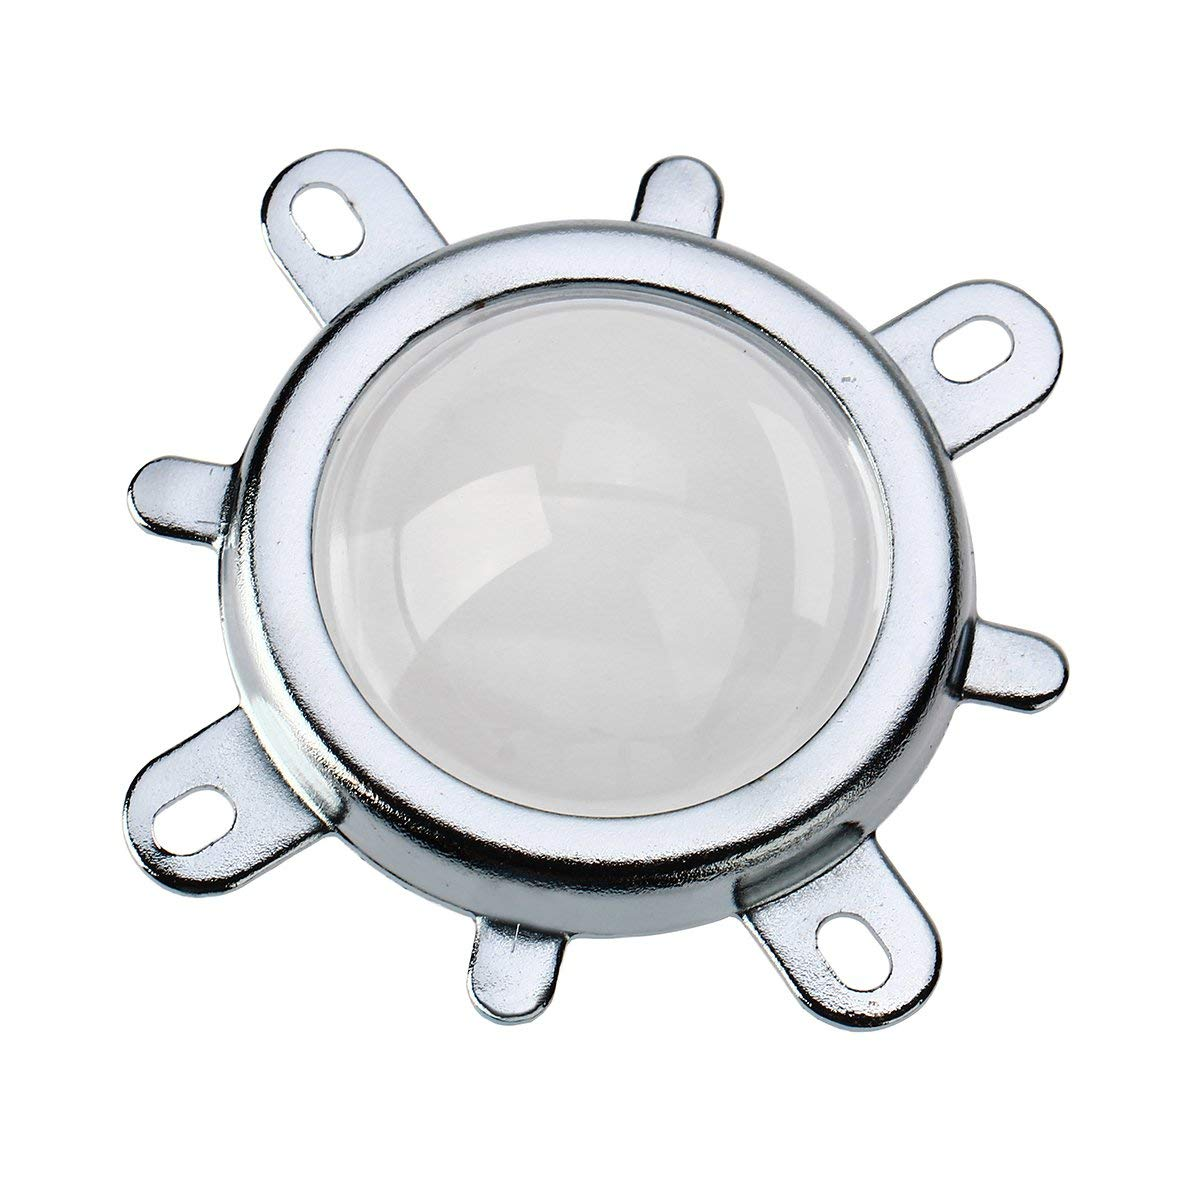 Optical Glass Lens 44mm + 50mm Reflector + Fixed Bracket Holder Suite for 20W-100W Power LED 60/120 Degree Focus